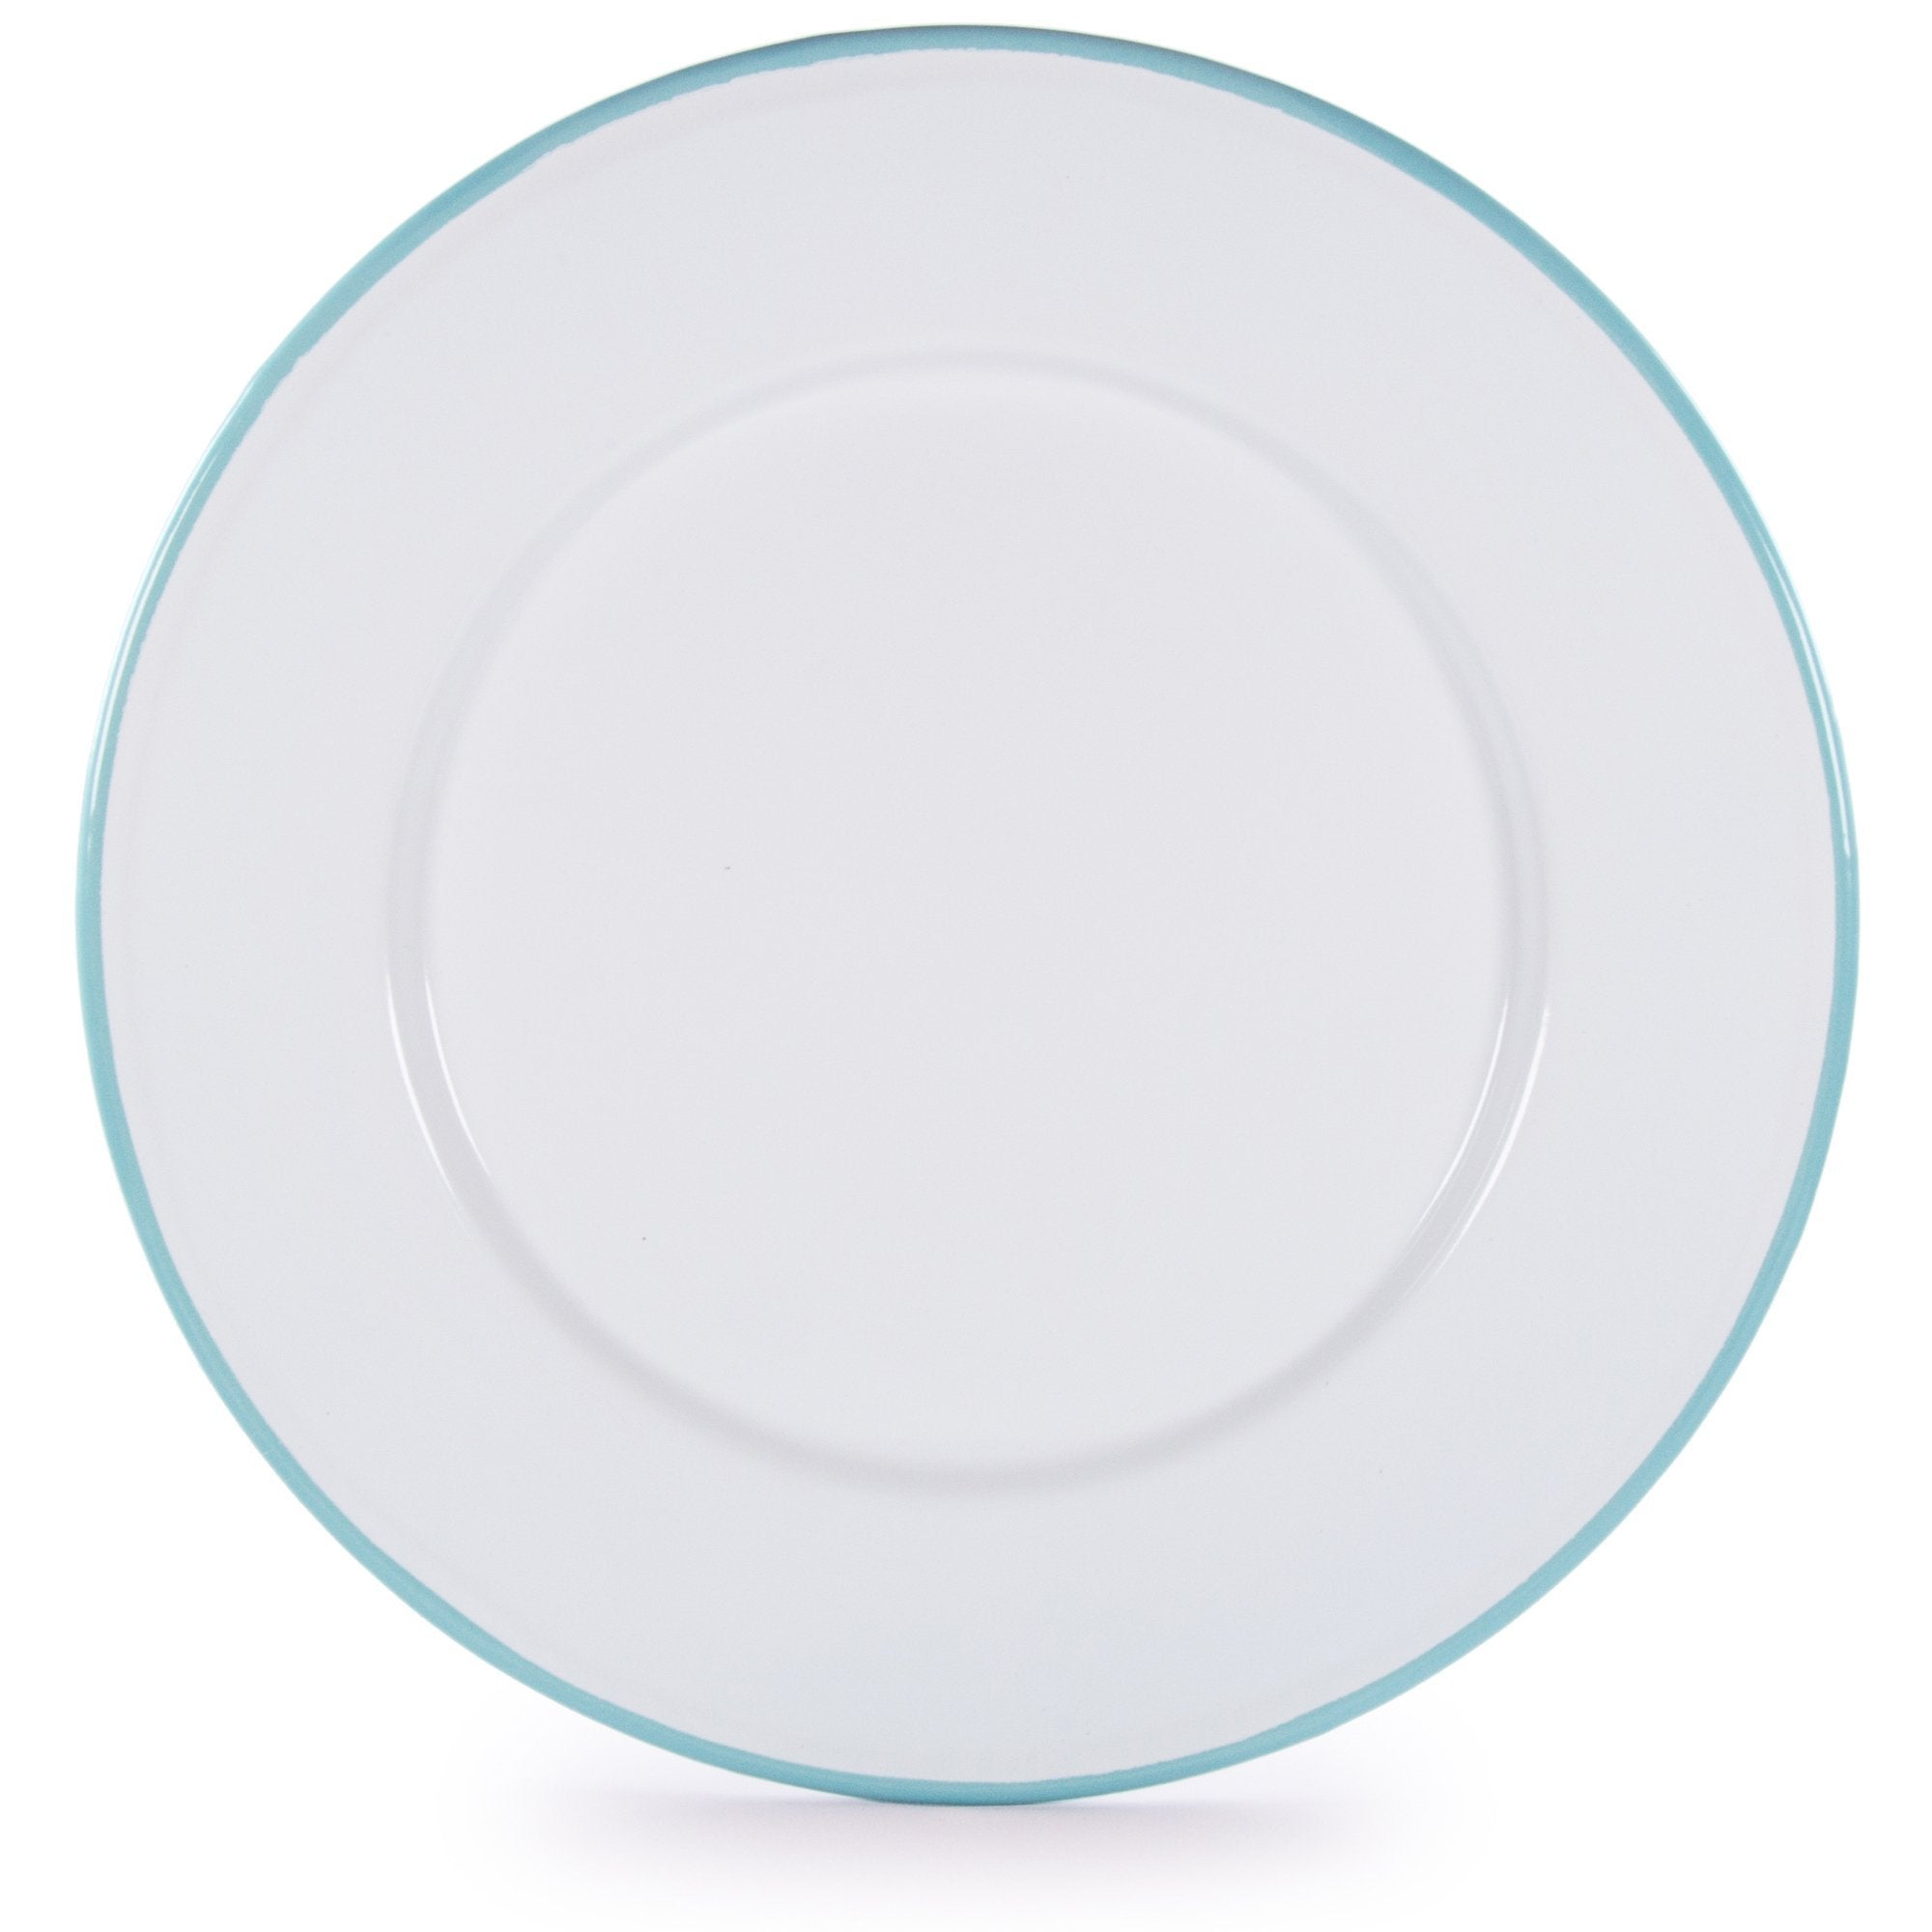 RGW91 - Glampware  Plates - White with Sea Glass Trim  - Set of 4